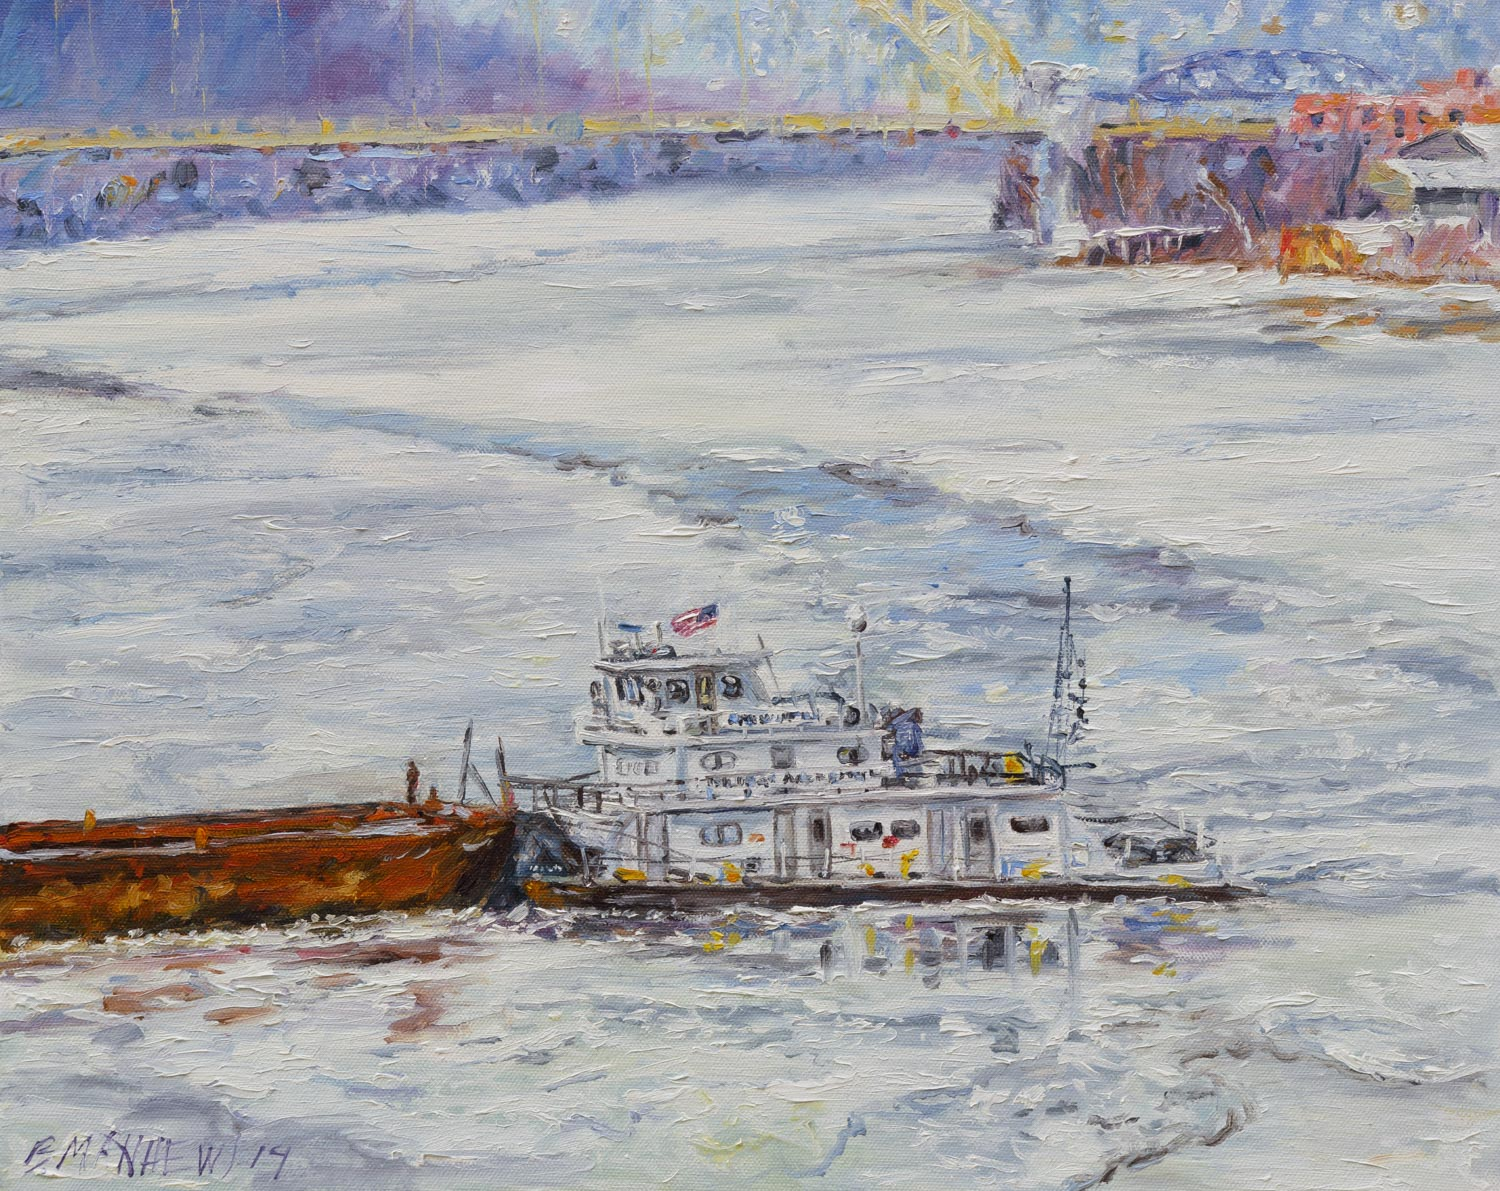 The Grant Wesley Murray on a Frozen Ohio River